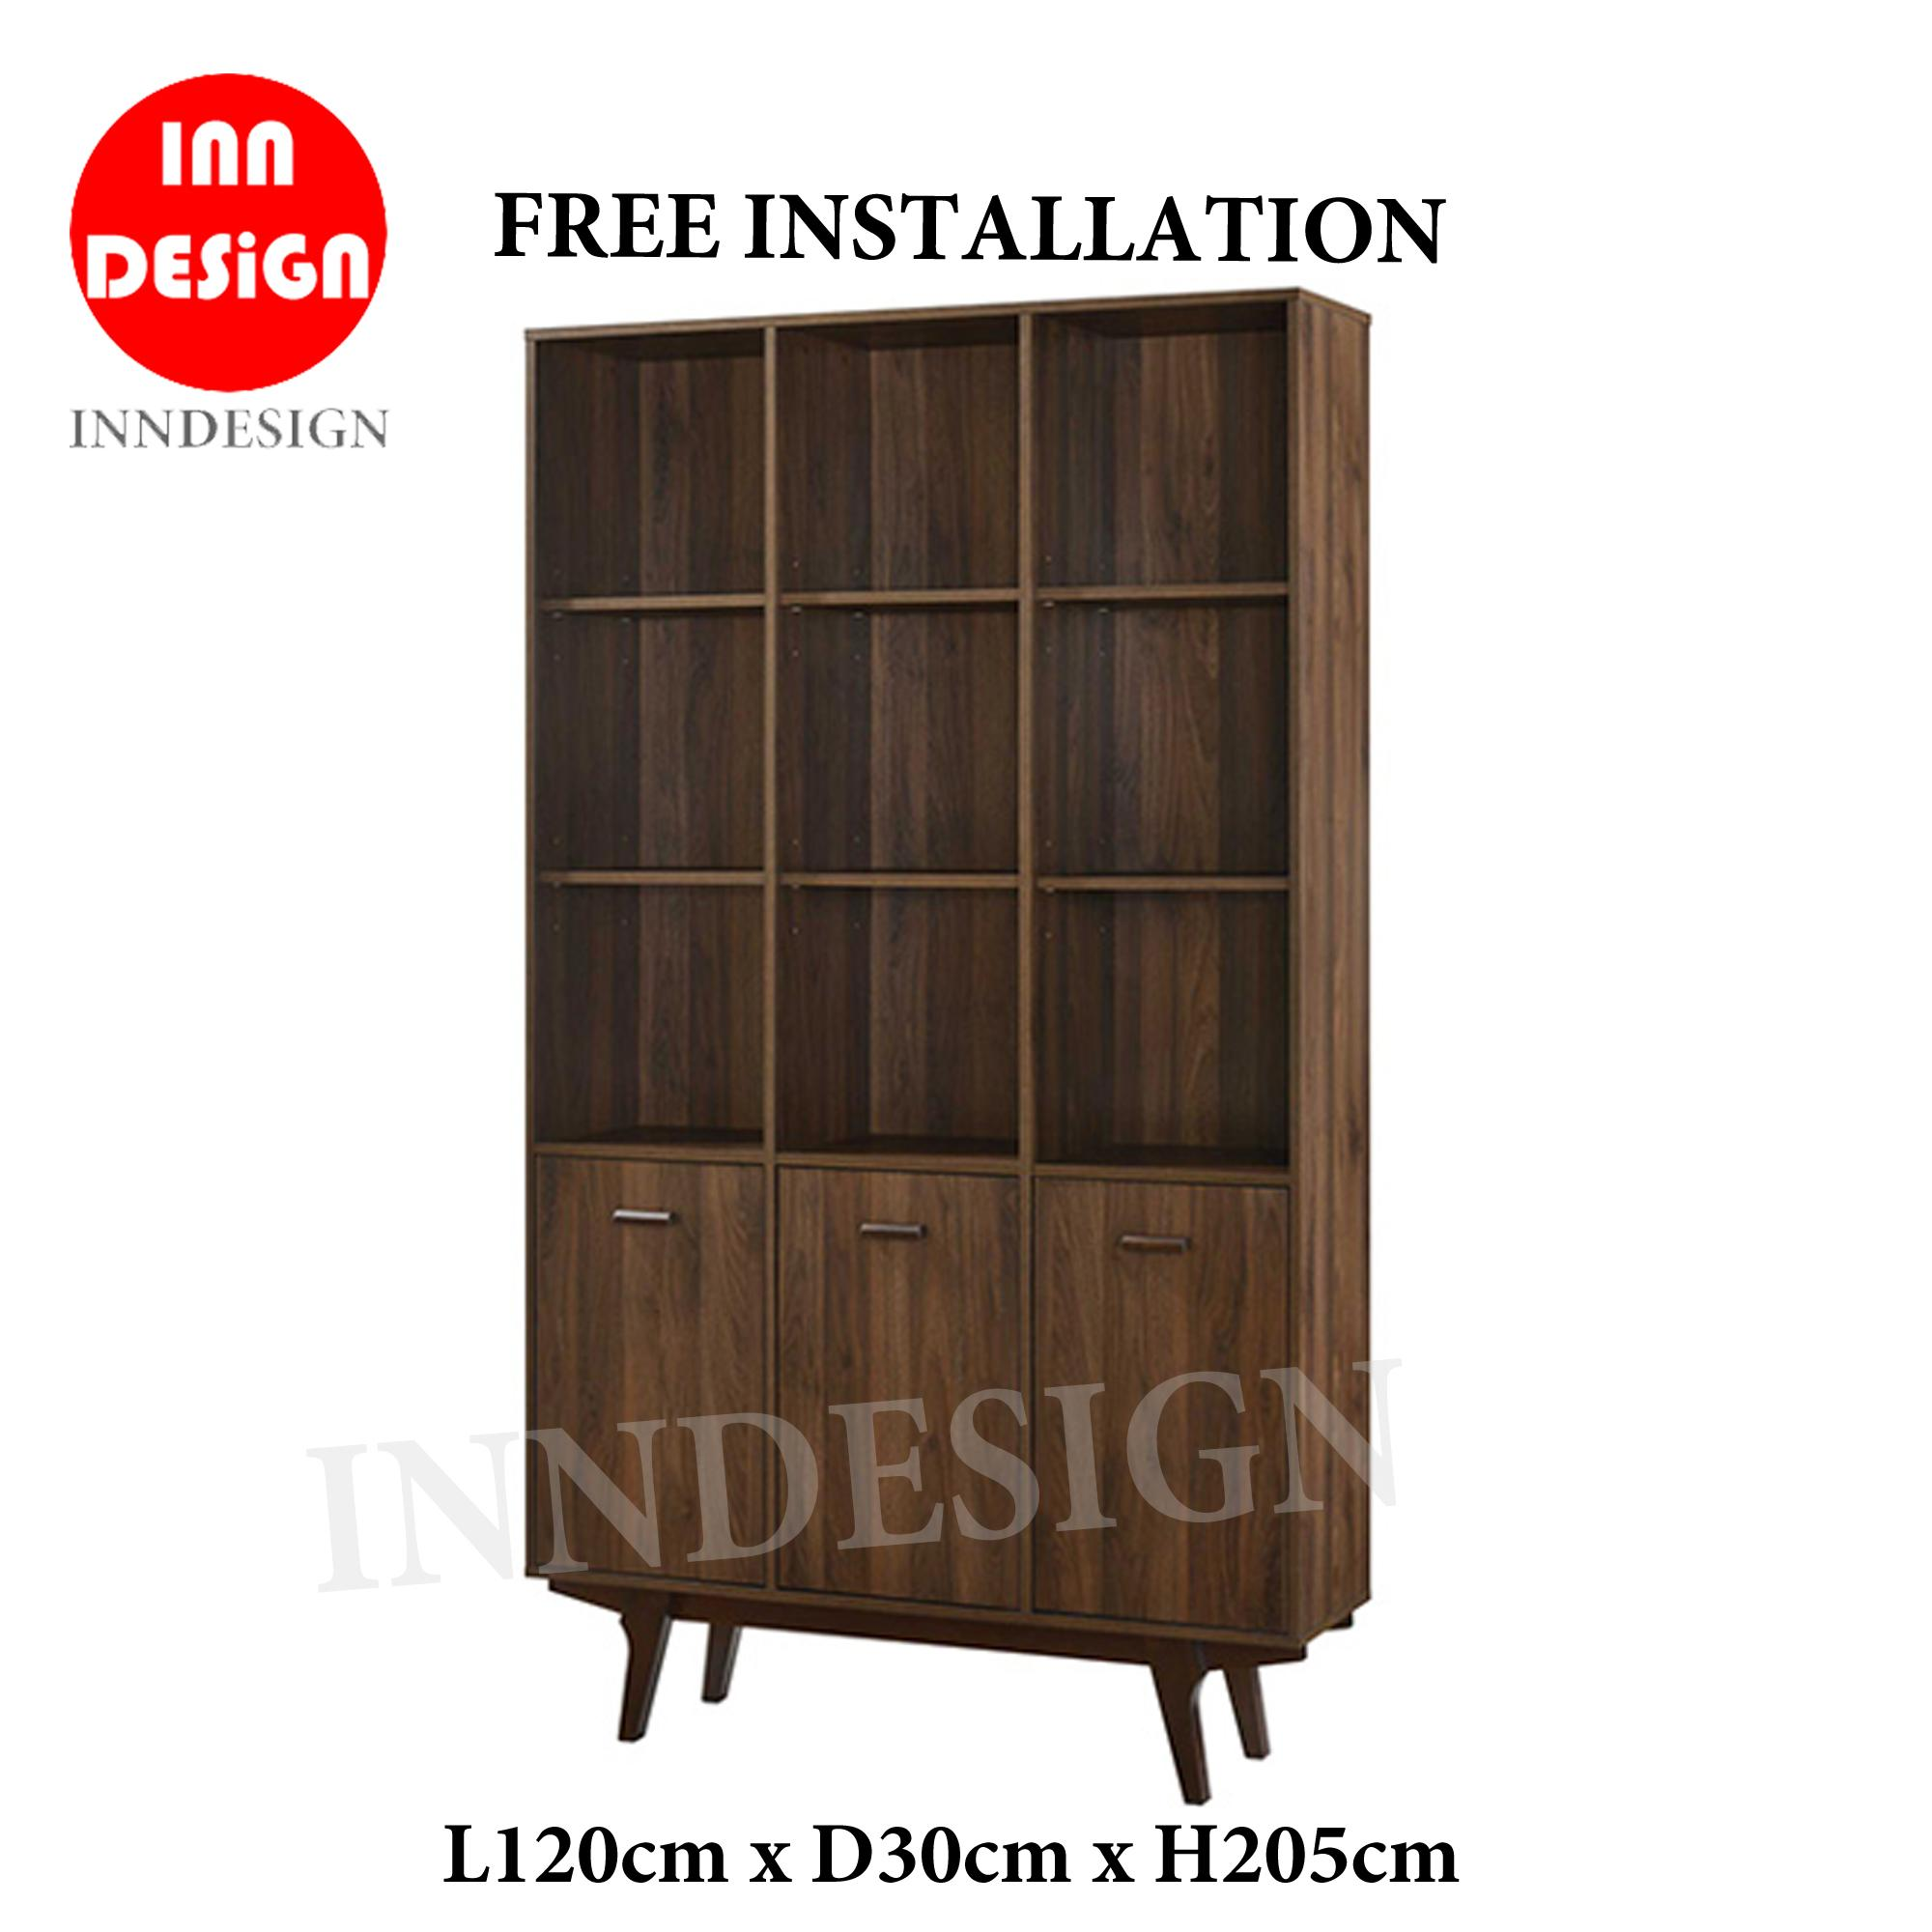 Edda II Bookshelf (Free Delivery and Installation)